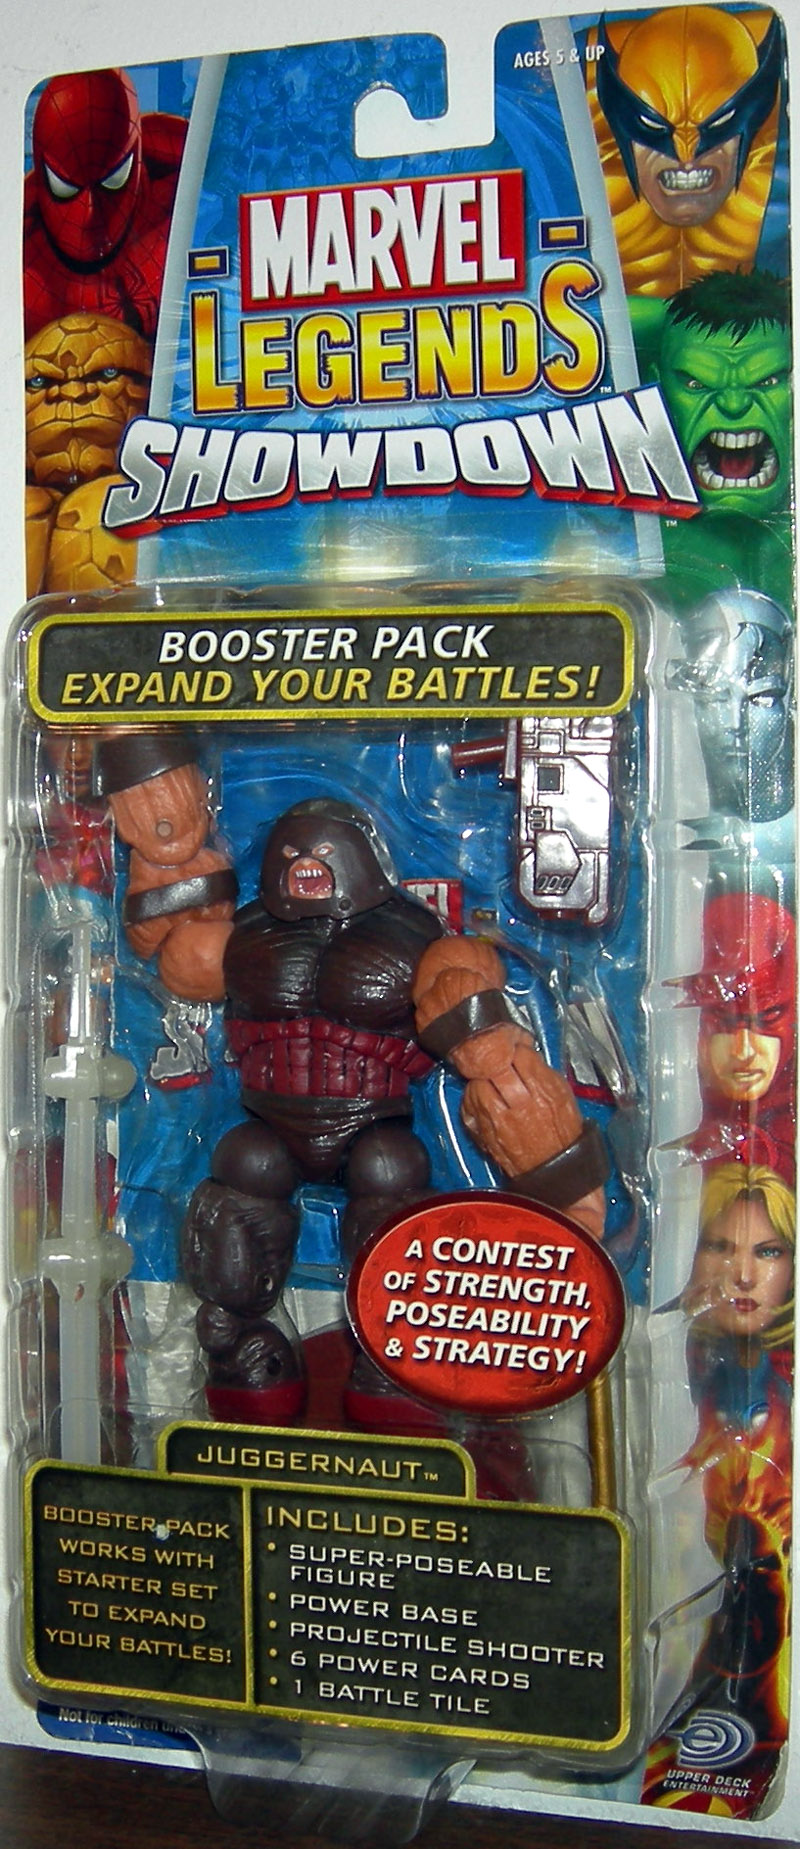 Juggernaut (Marvel Legends Showdown)